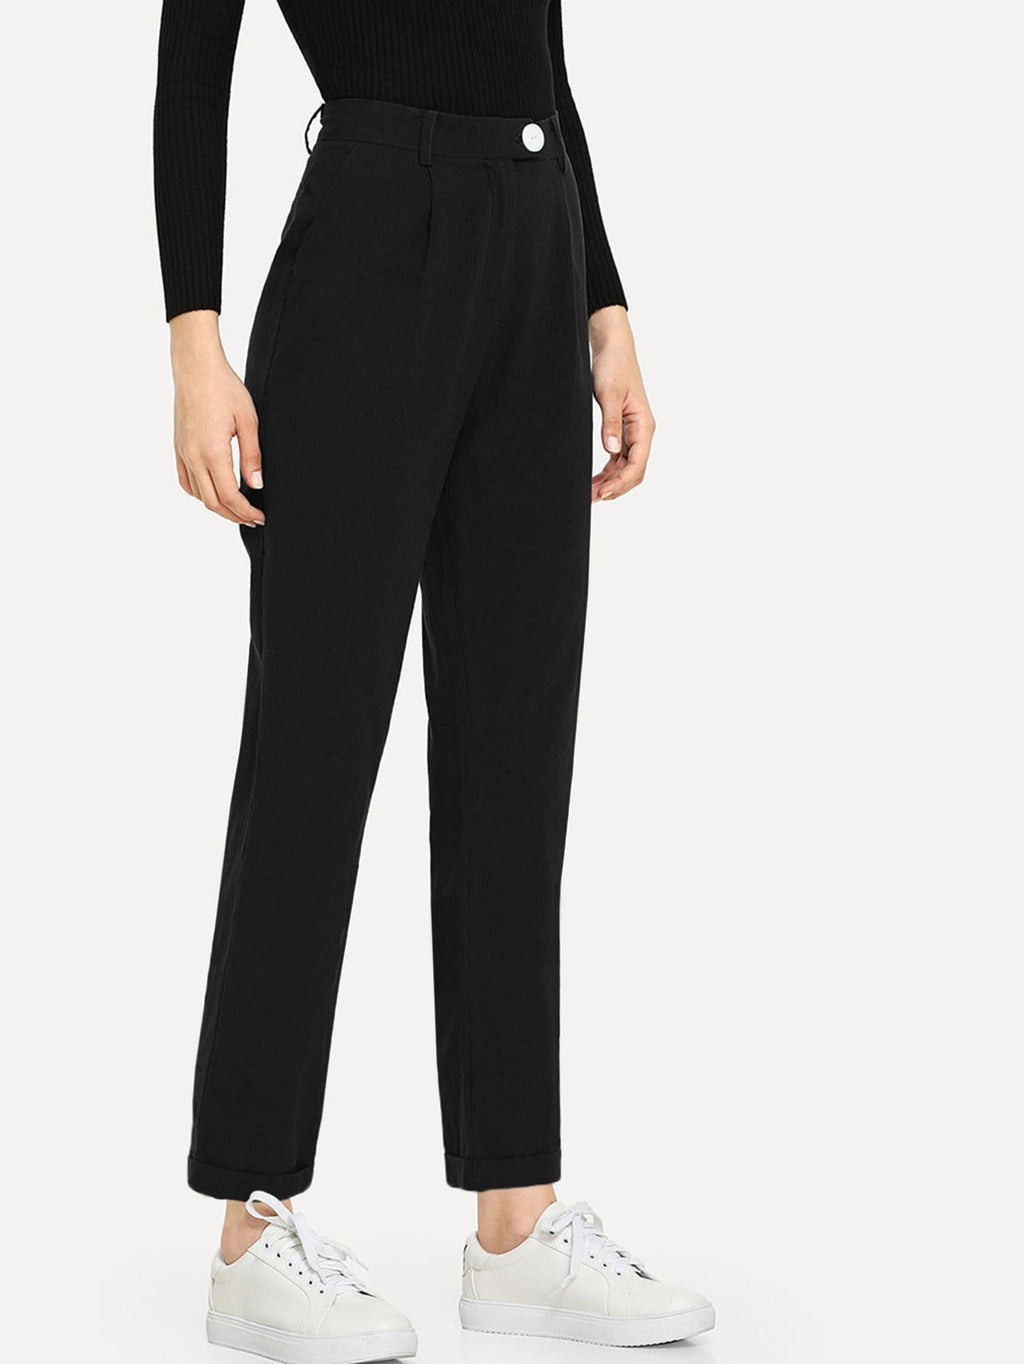 Pants For Women - Slant Pocket Solid Pants